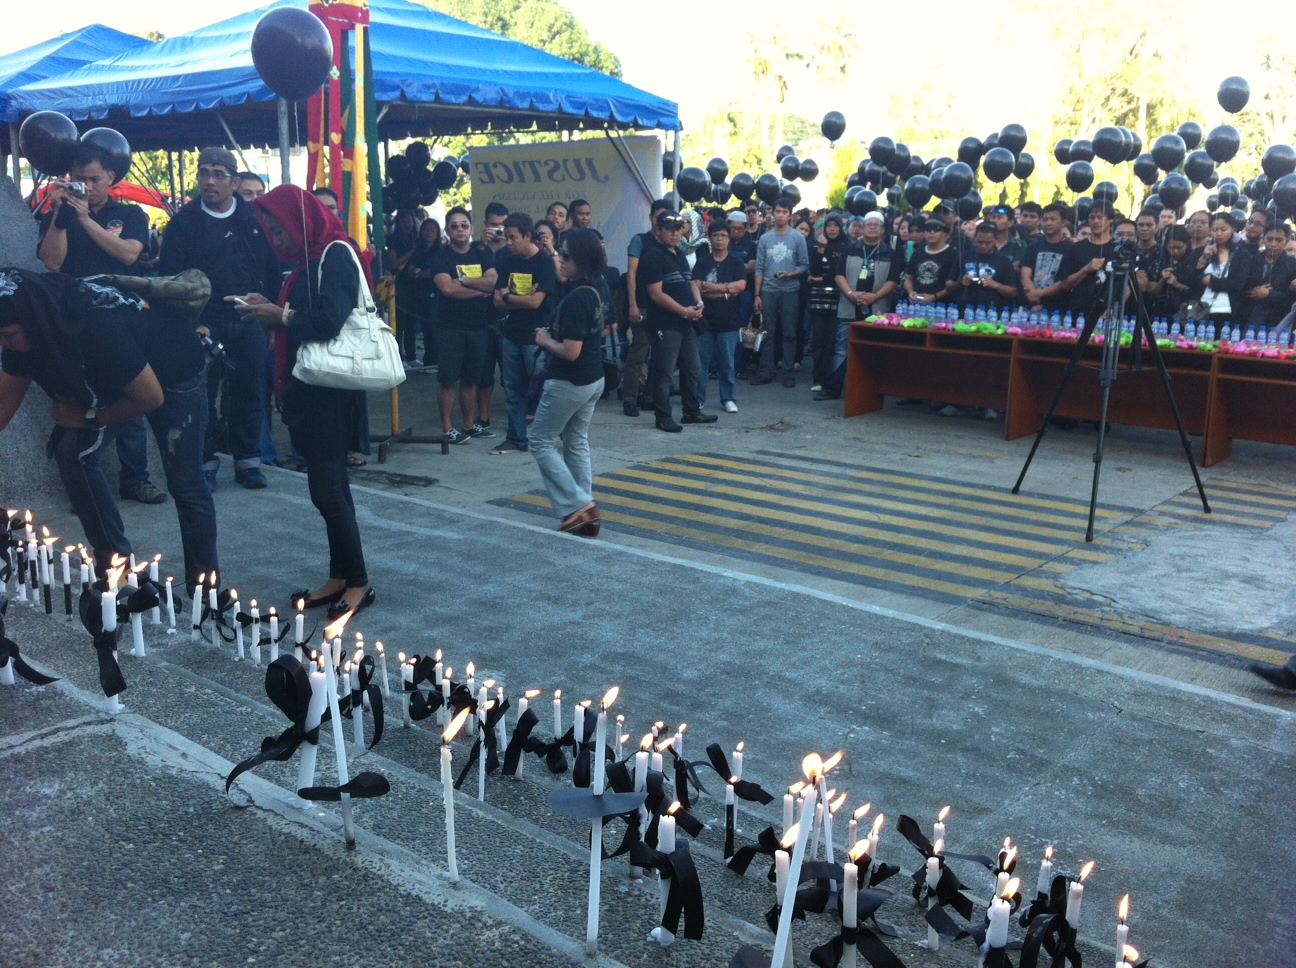 REMEMBERING THE DEAD. Media men and government employees in ARMM gather to remember the victims of the Maguindanao massacre. Photo by Ferdinandh Cabrera.